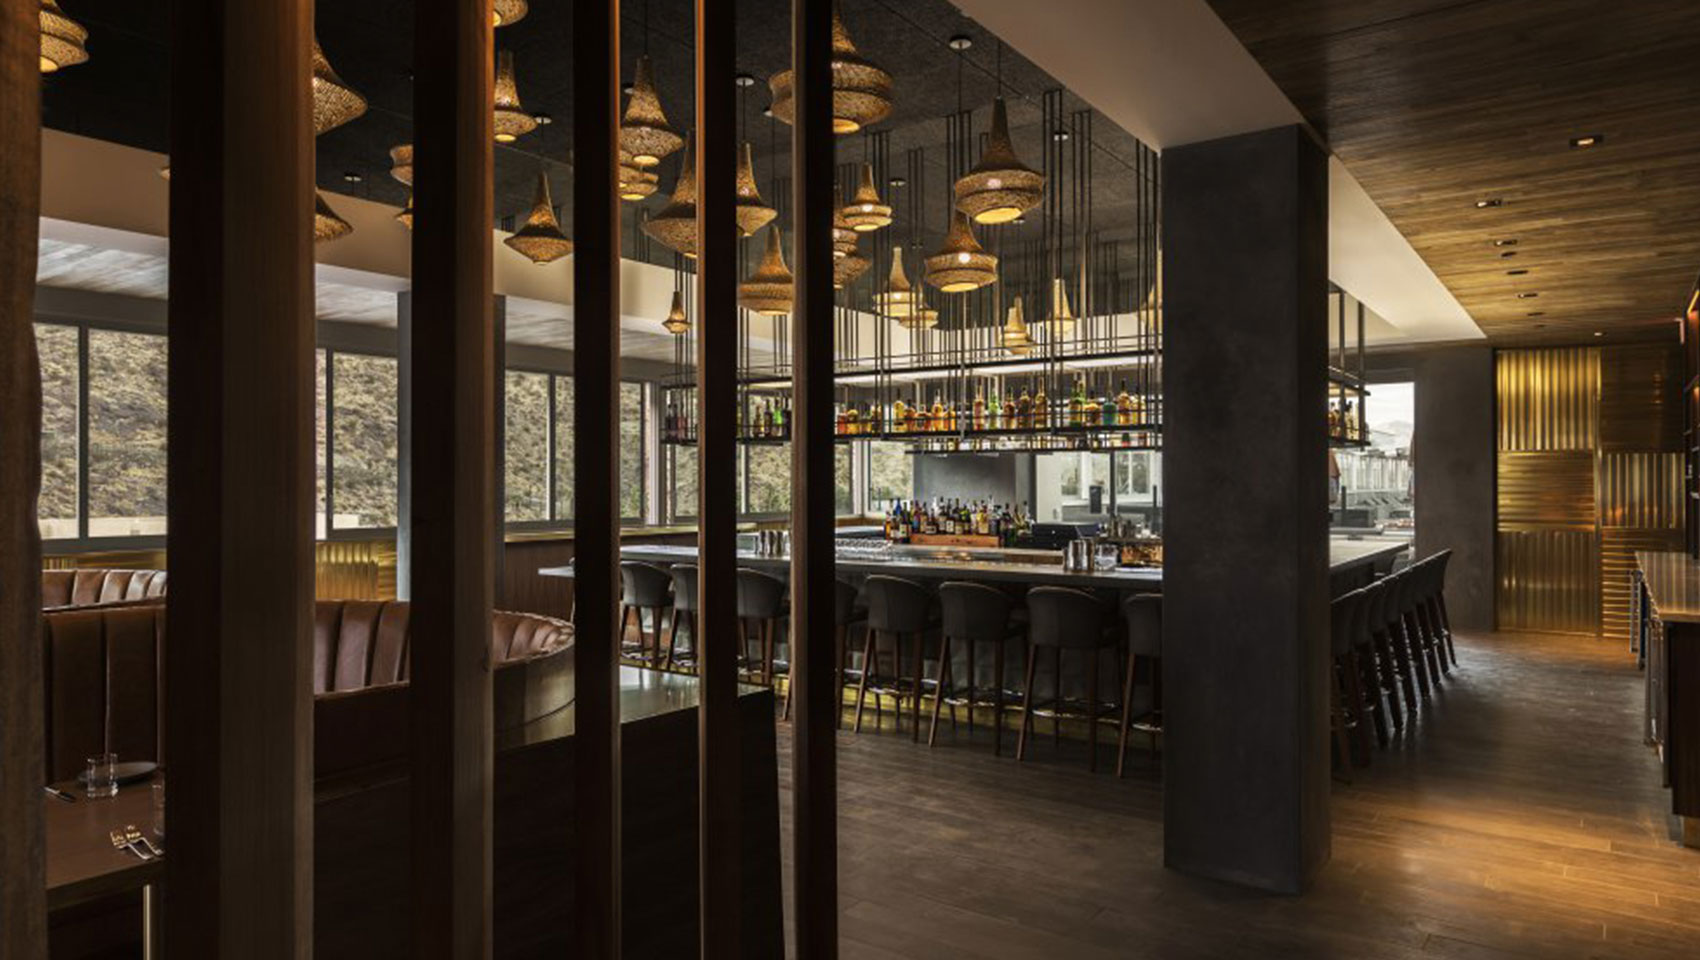 Palm springs restaurants bars kimpton rowan hotel 4 saints bar and dining room during the day dzzzfo